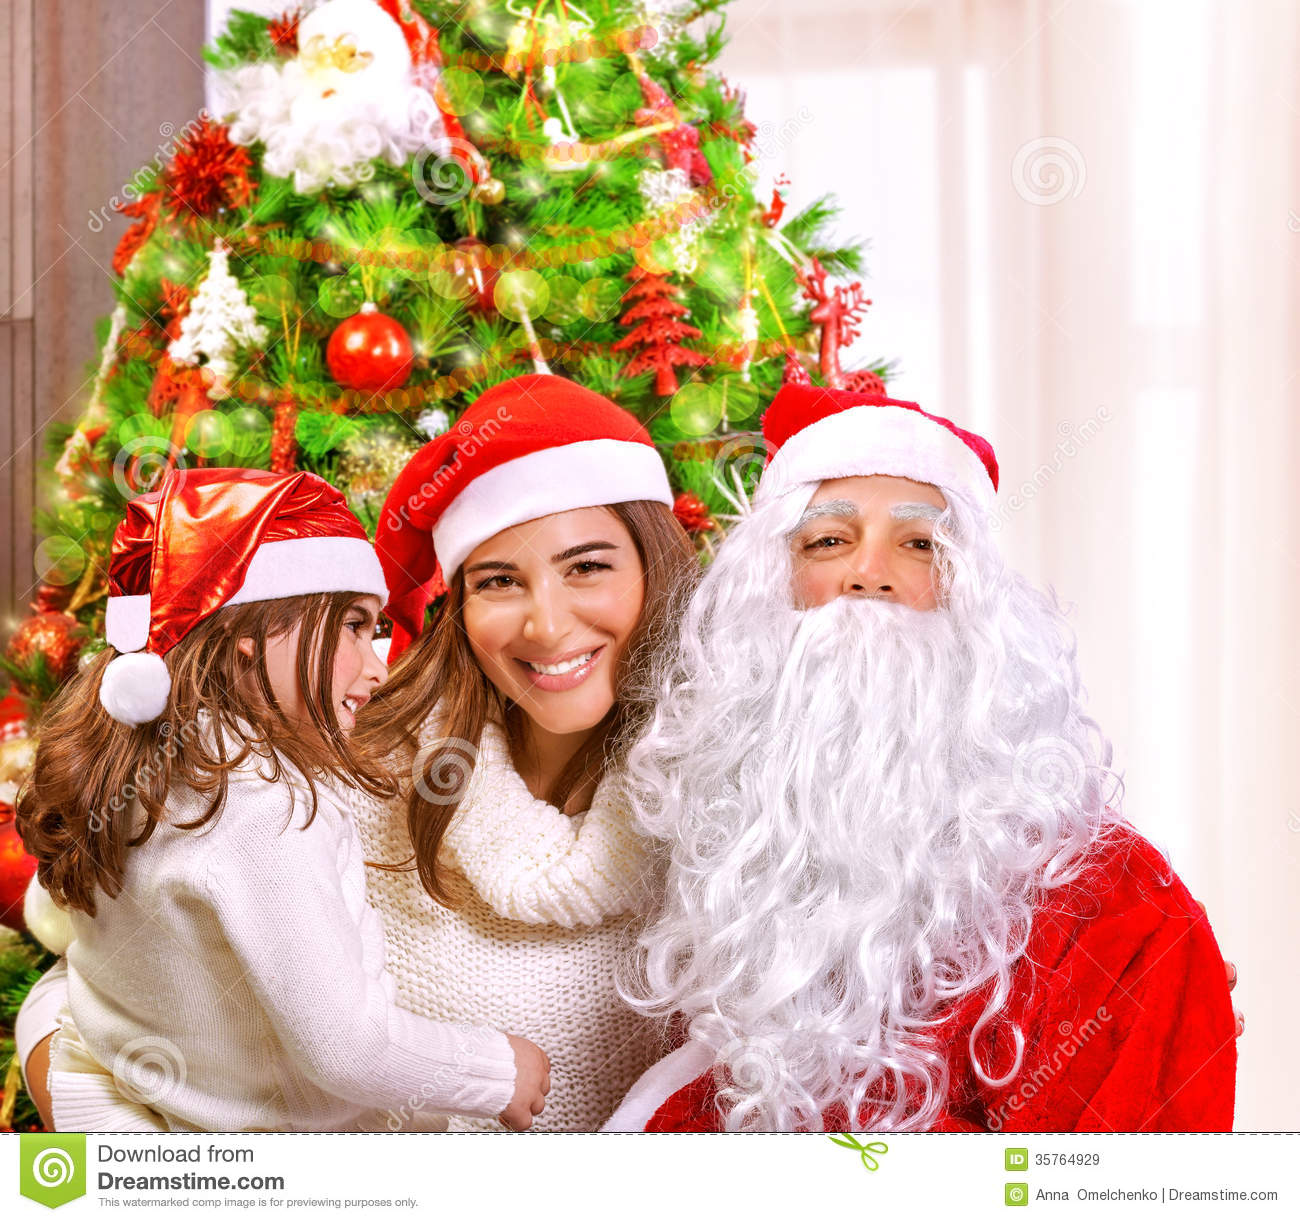 Christmas at home royalty free stock images image 35764929 for At home christmas